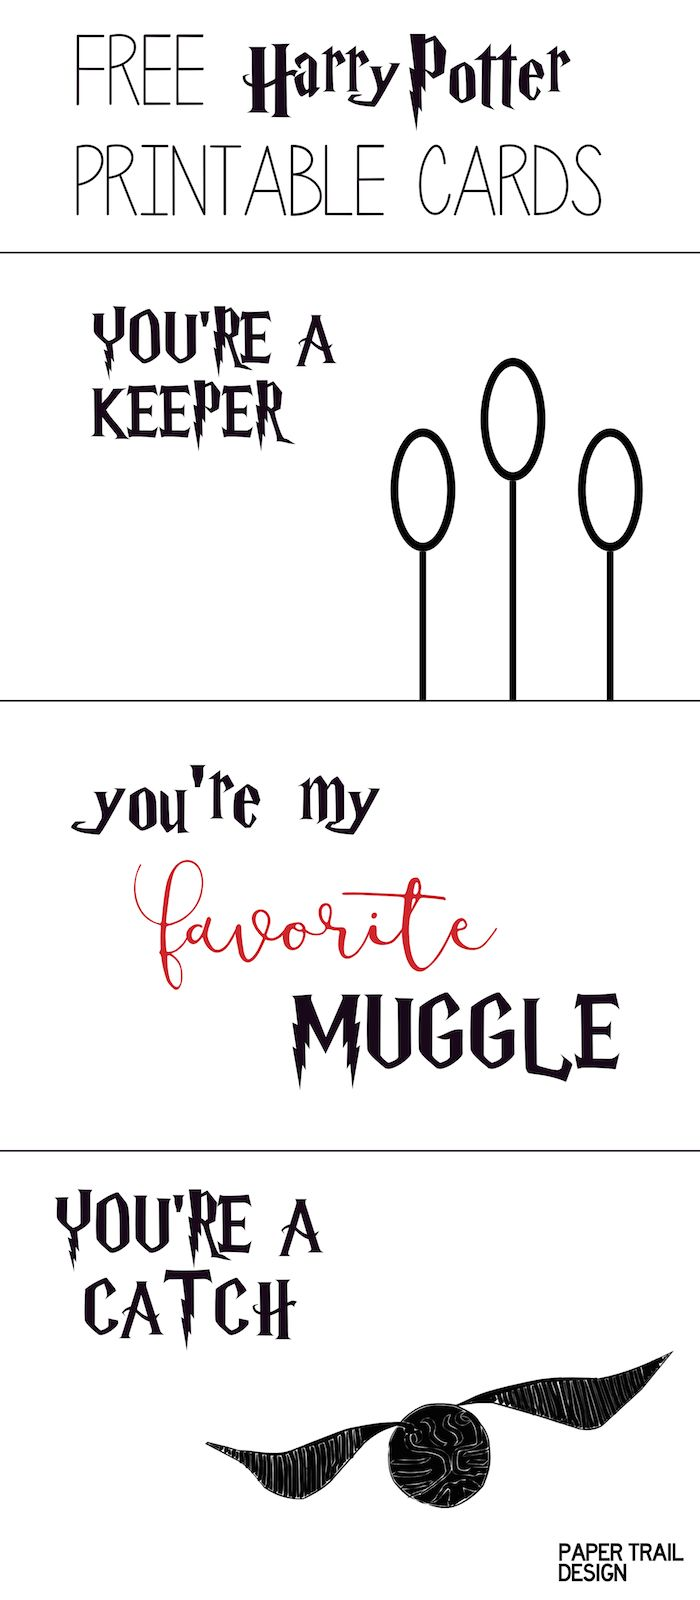 Harry Potter Birthday Cards Free Printable ~ Free printable harry potter cards and anniversaries